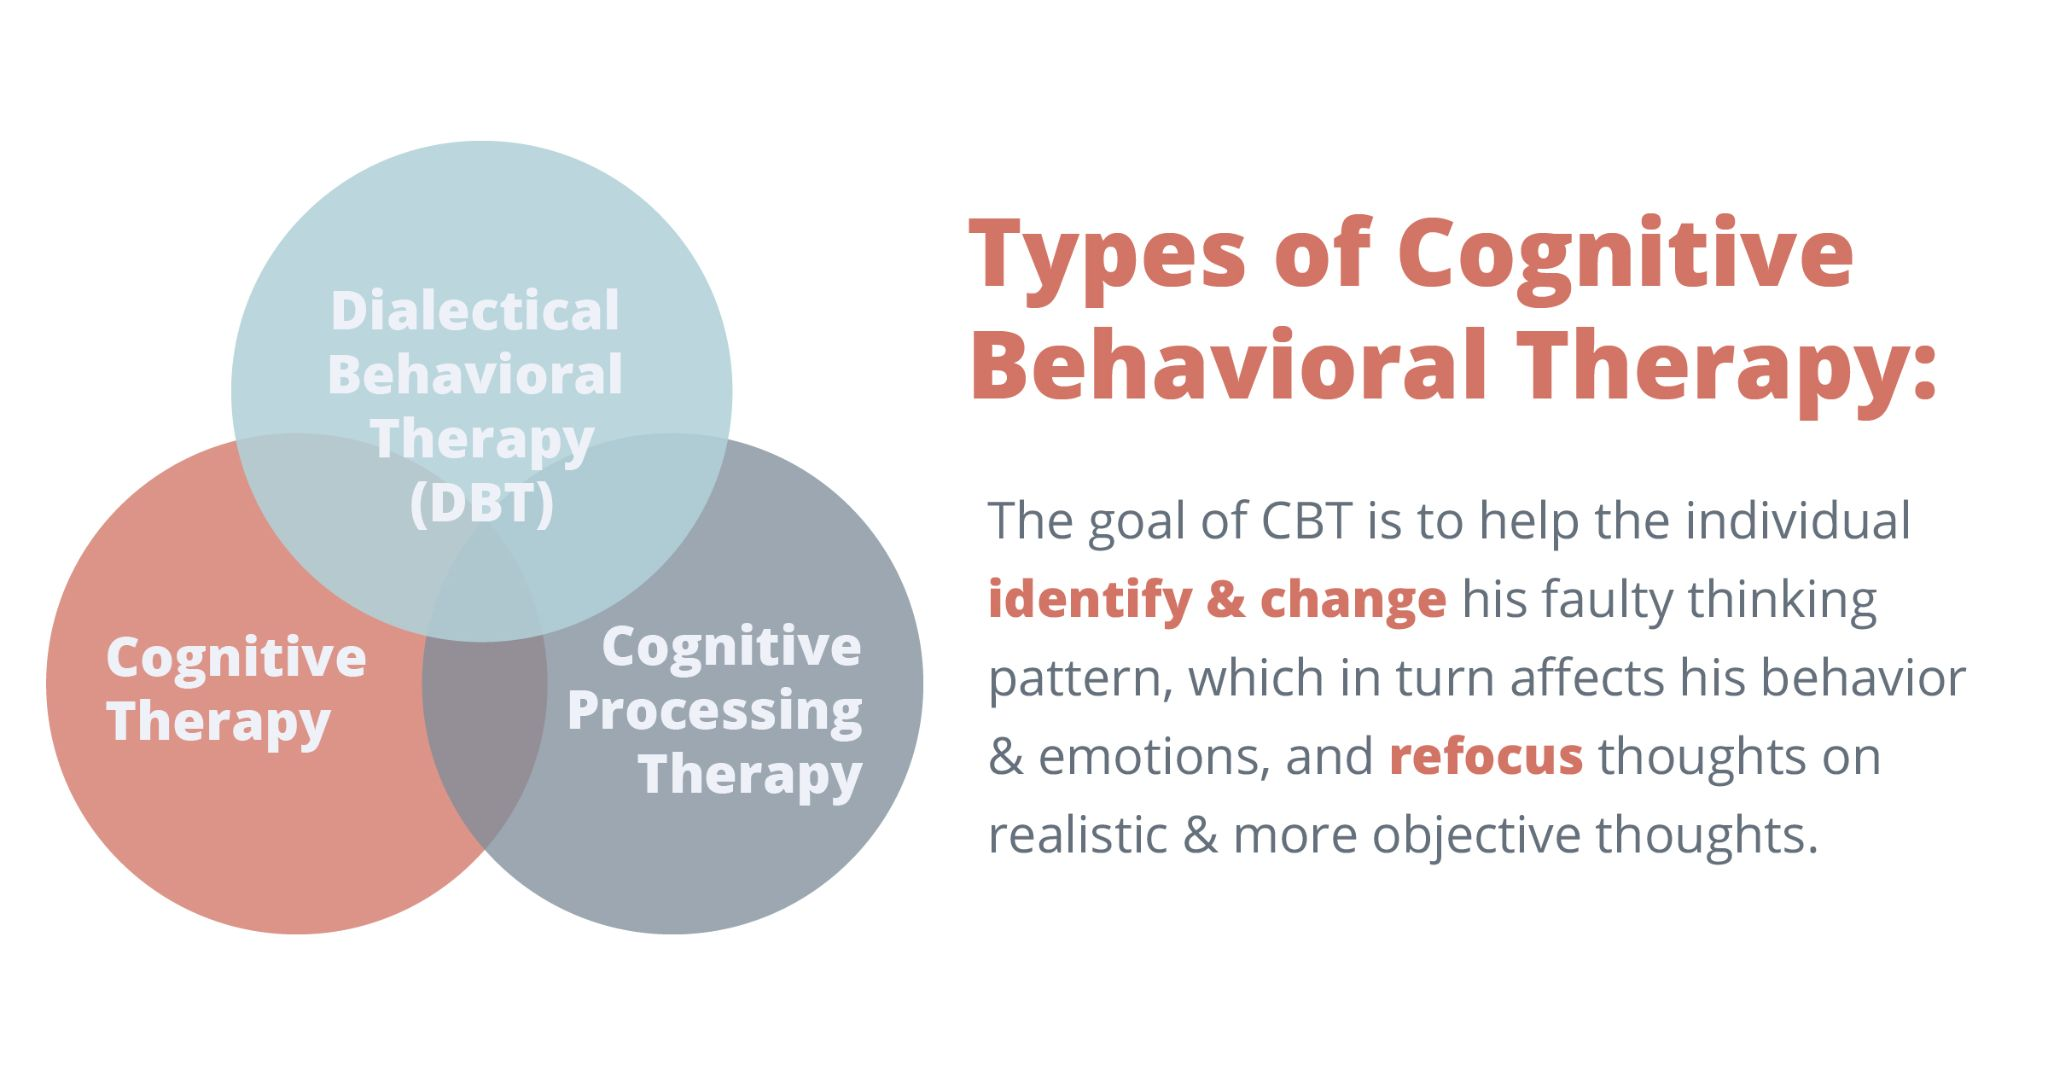 Types of cognitive behavioral therapy: The goal of CBT is to help the individual identify and change his faulty thinking pattern, which in turn affects his behavior & emotions, and refocus thoughts on realistic& more objective thoughts.